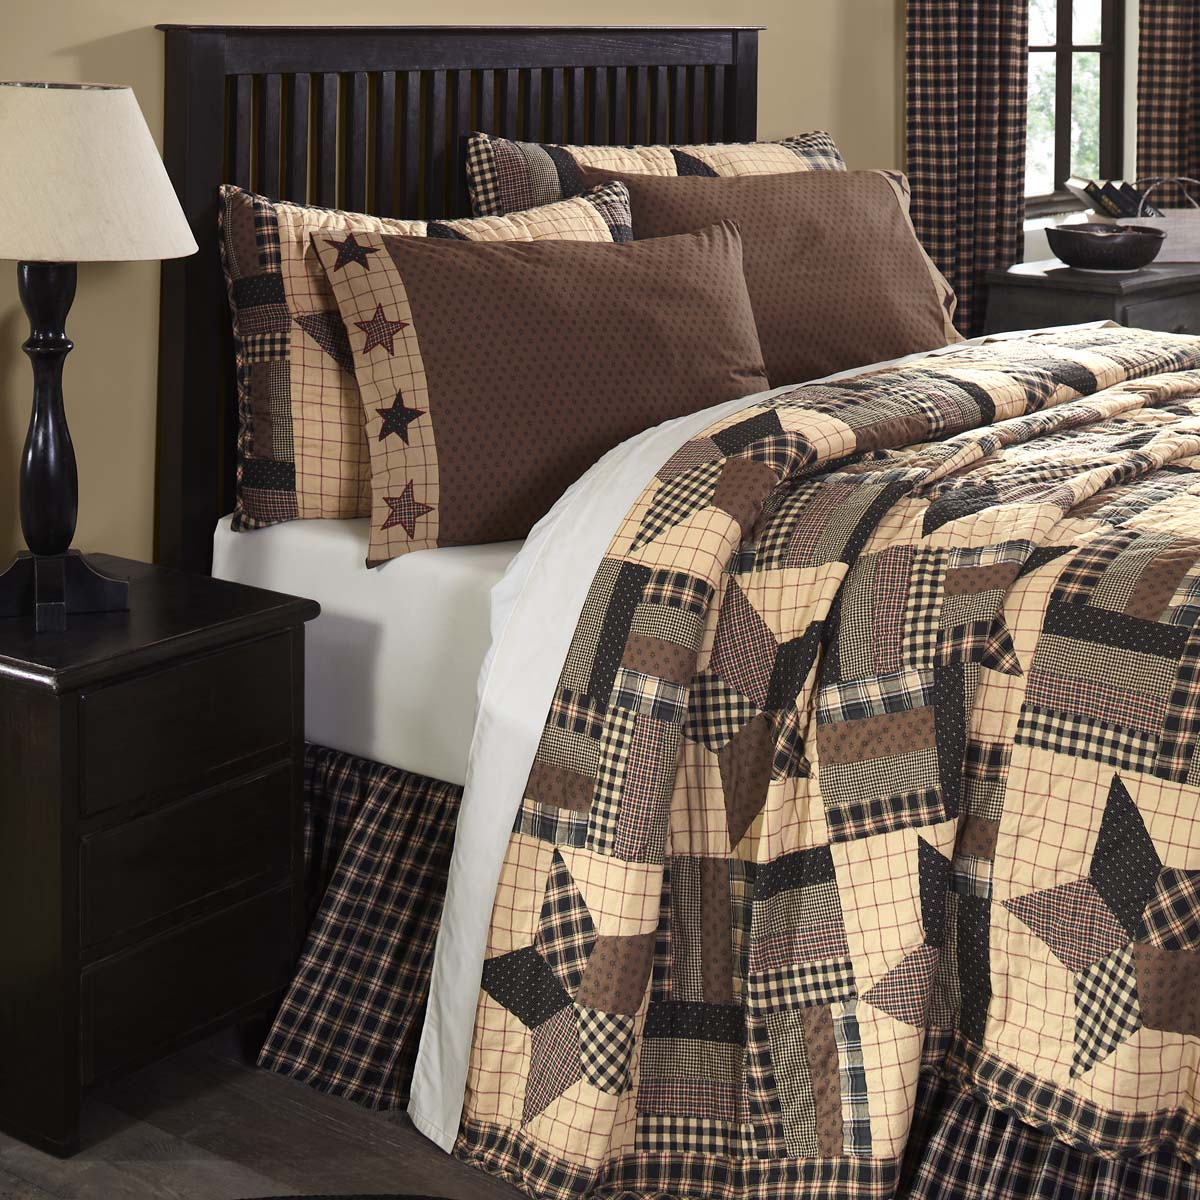 Bingham Star Luxury King Quilt 120Wx105L - Woodrol